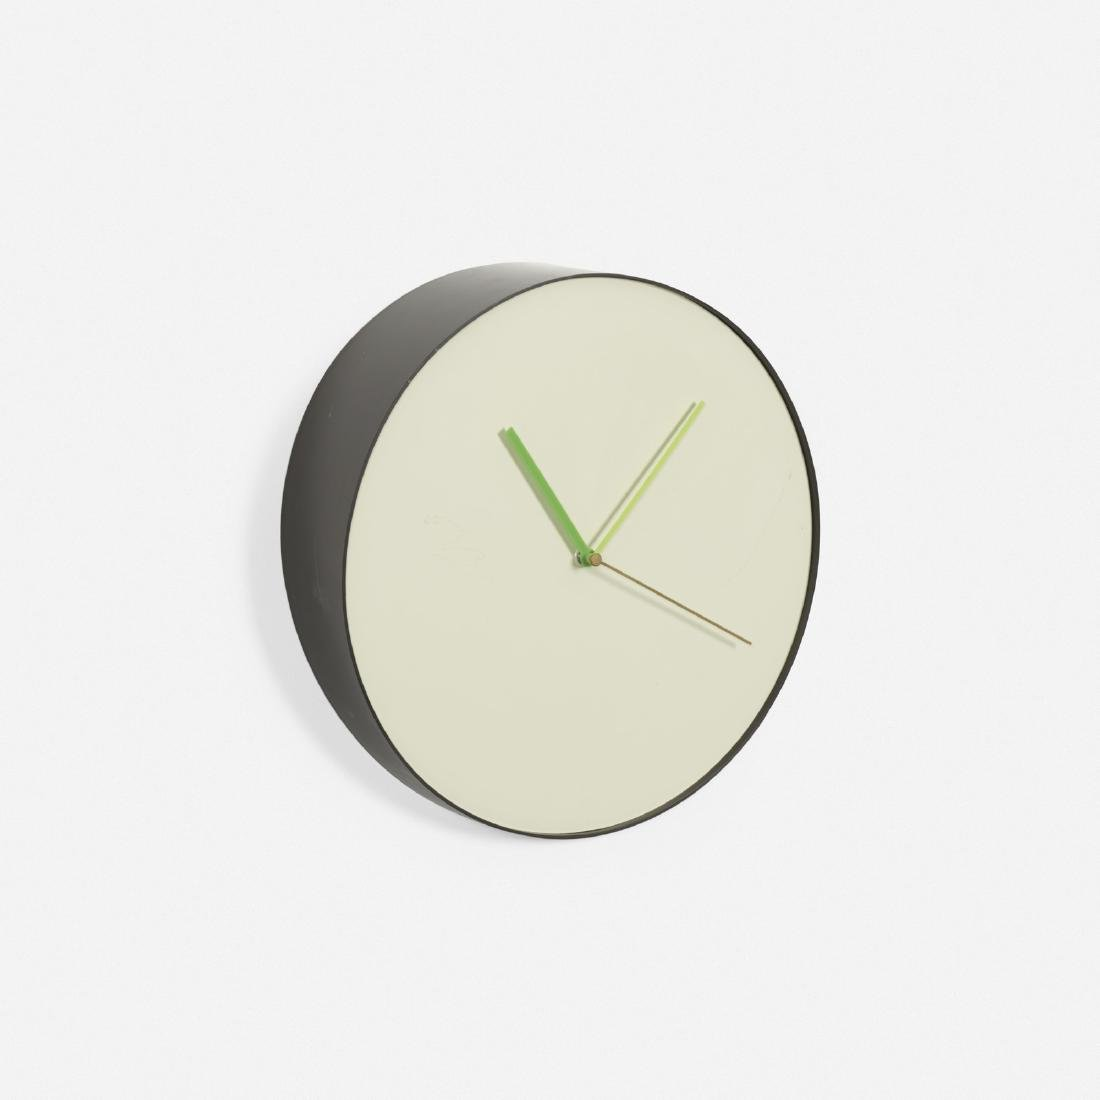 Rich Brilliant Willing, Bias wall clock